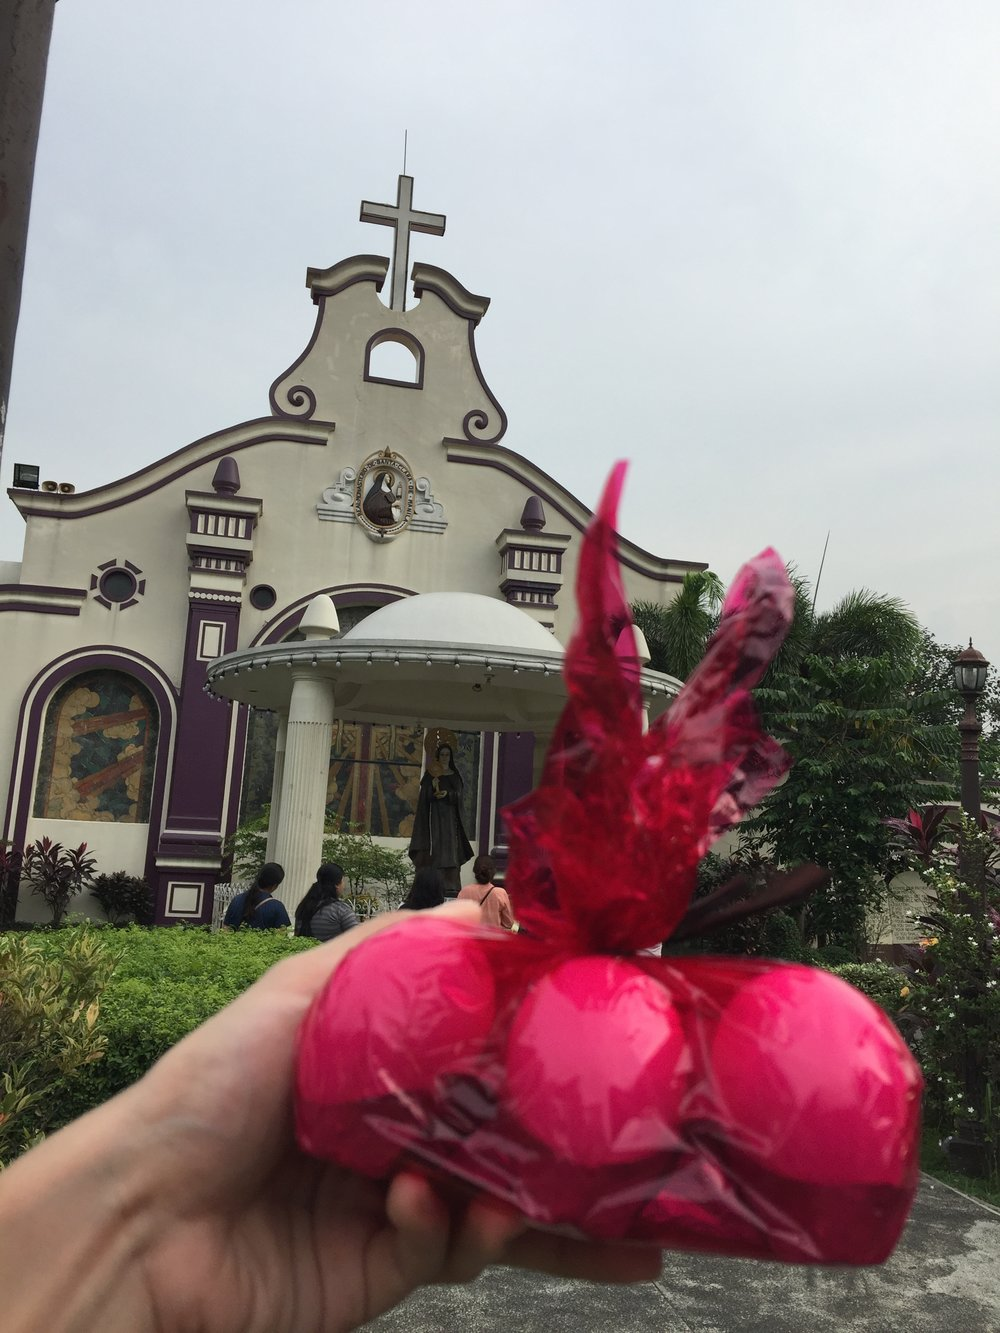 I try to visit Sta. Clara every week 💒